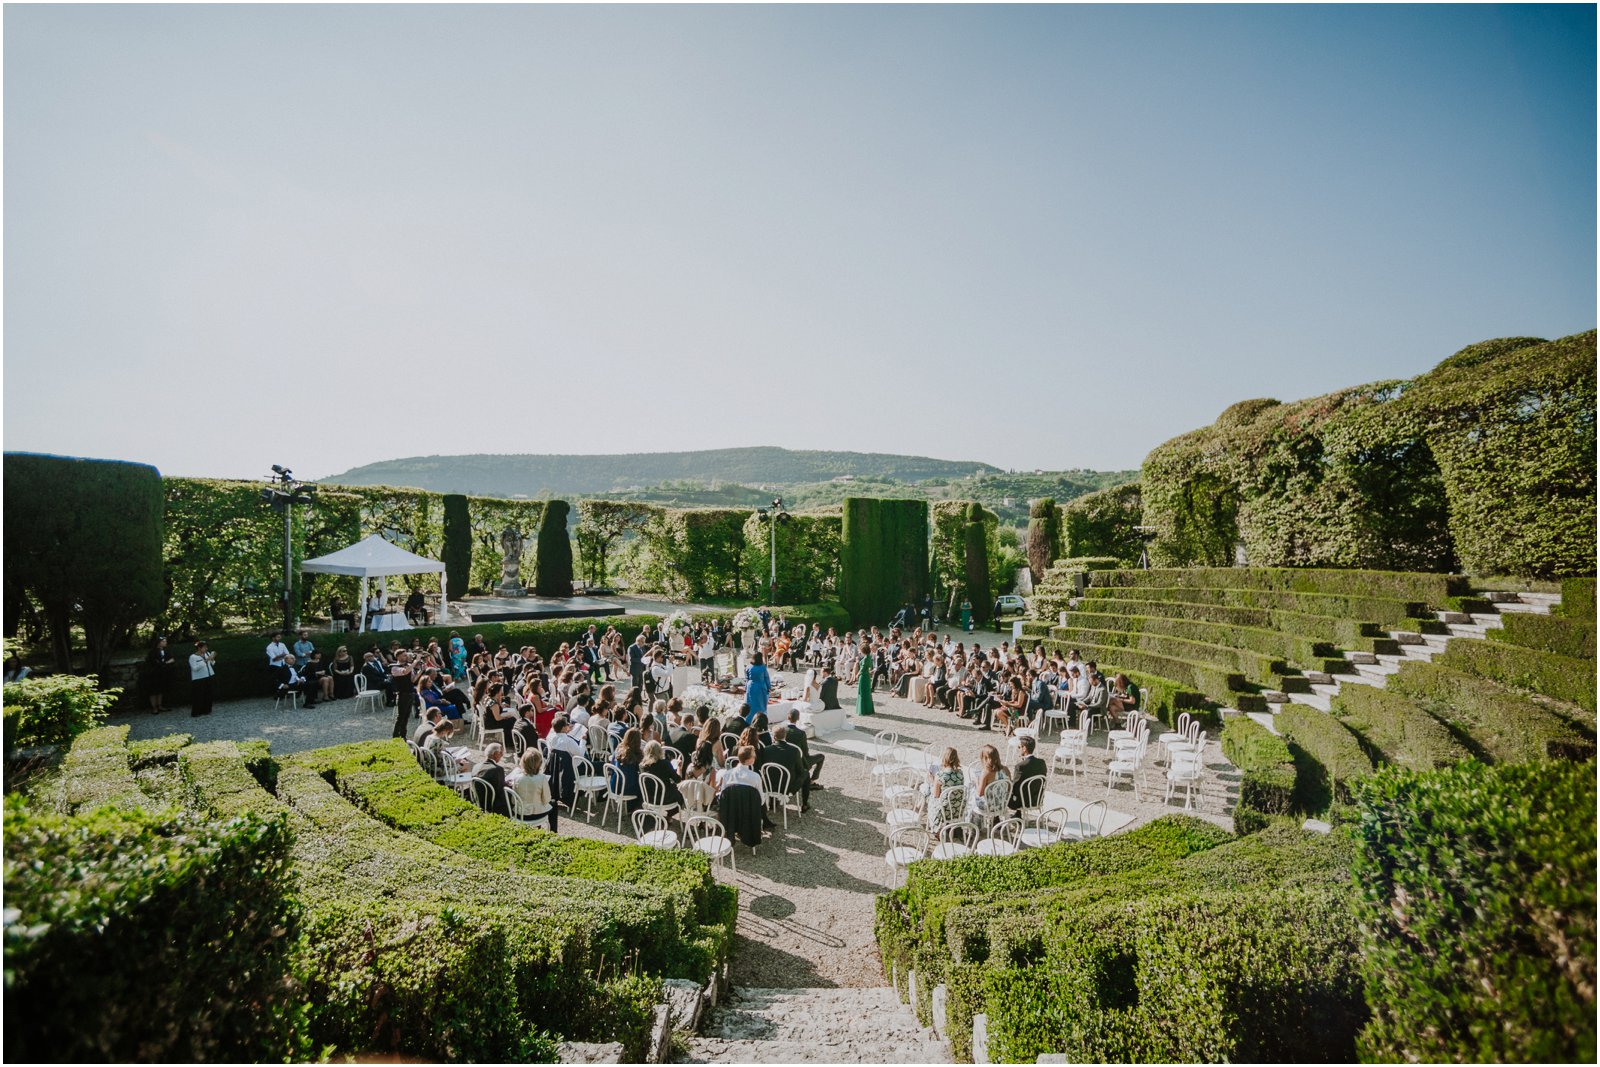 Matrimonio In Villa : Villa matrimonio verona foorevent wedding planner